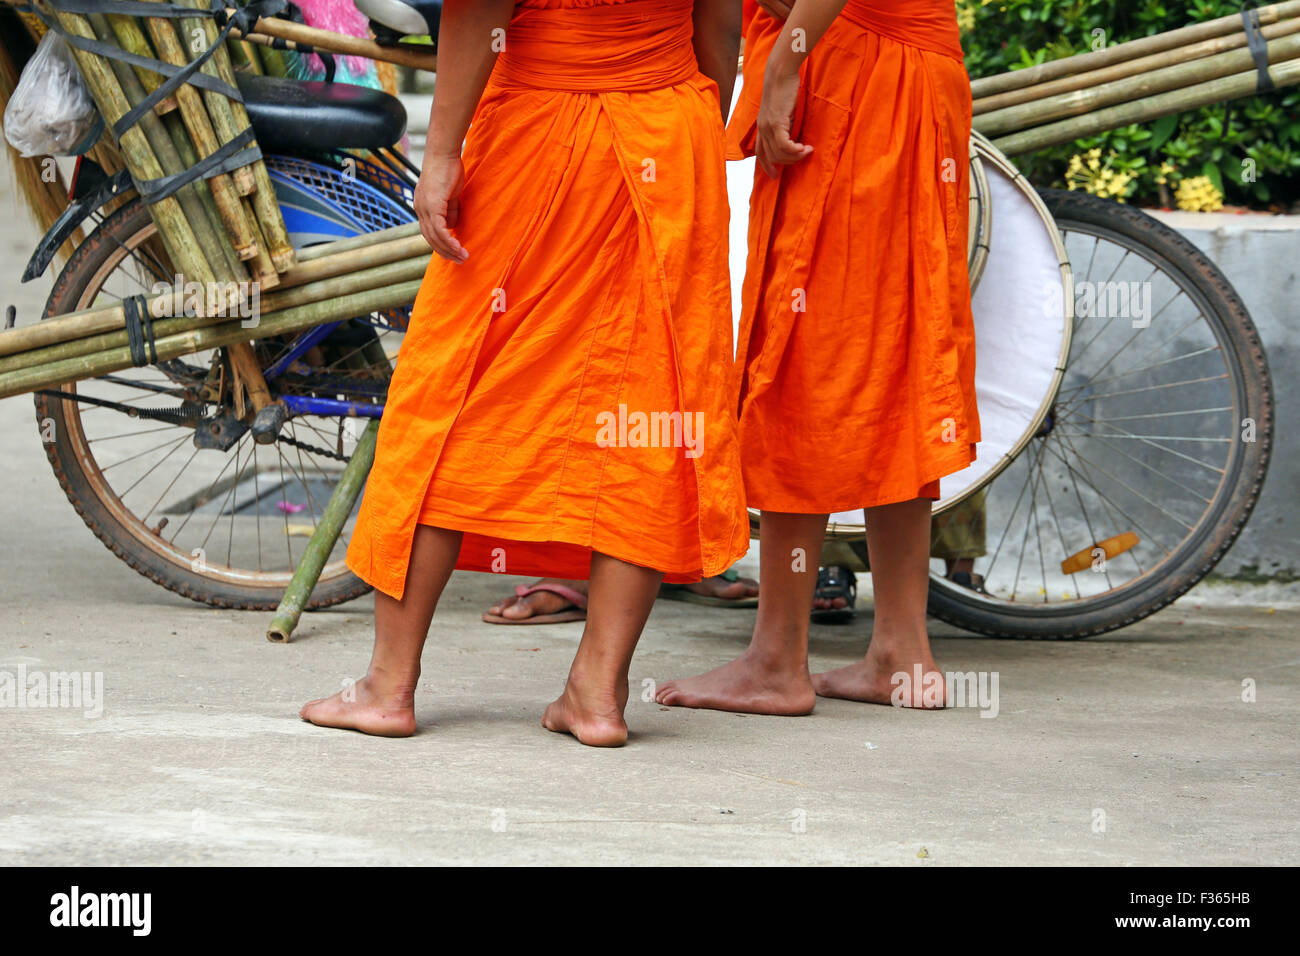 Buddhist Monks buying brushes, Vientiane, Laos - Stock Image